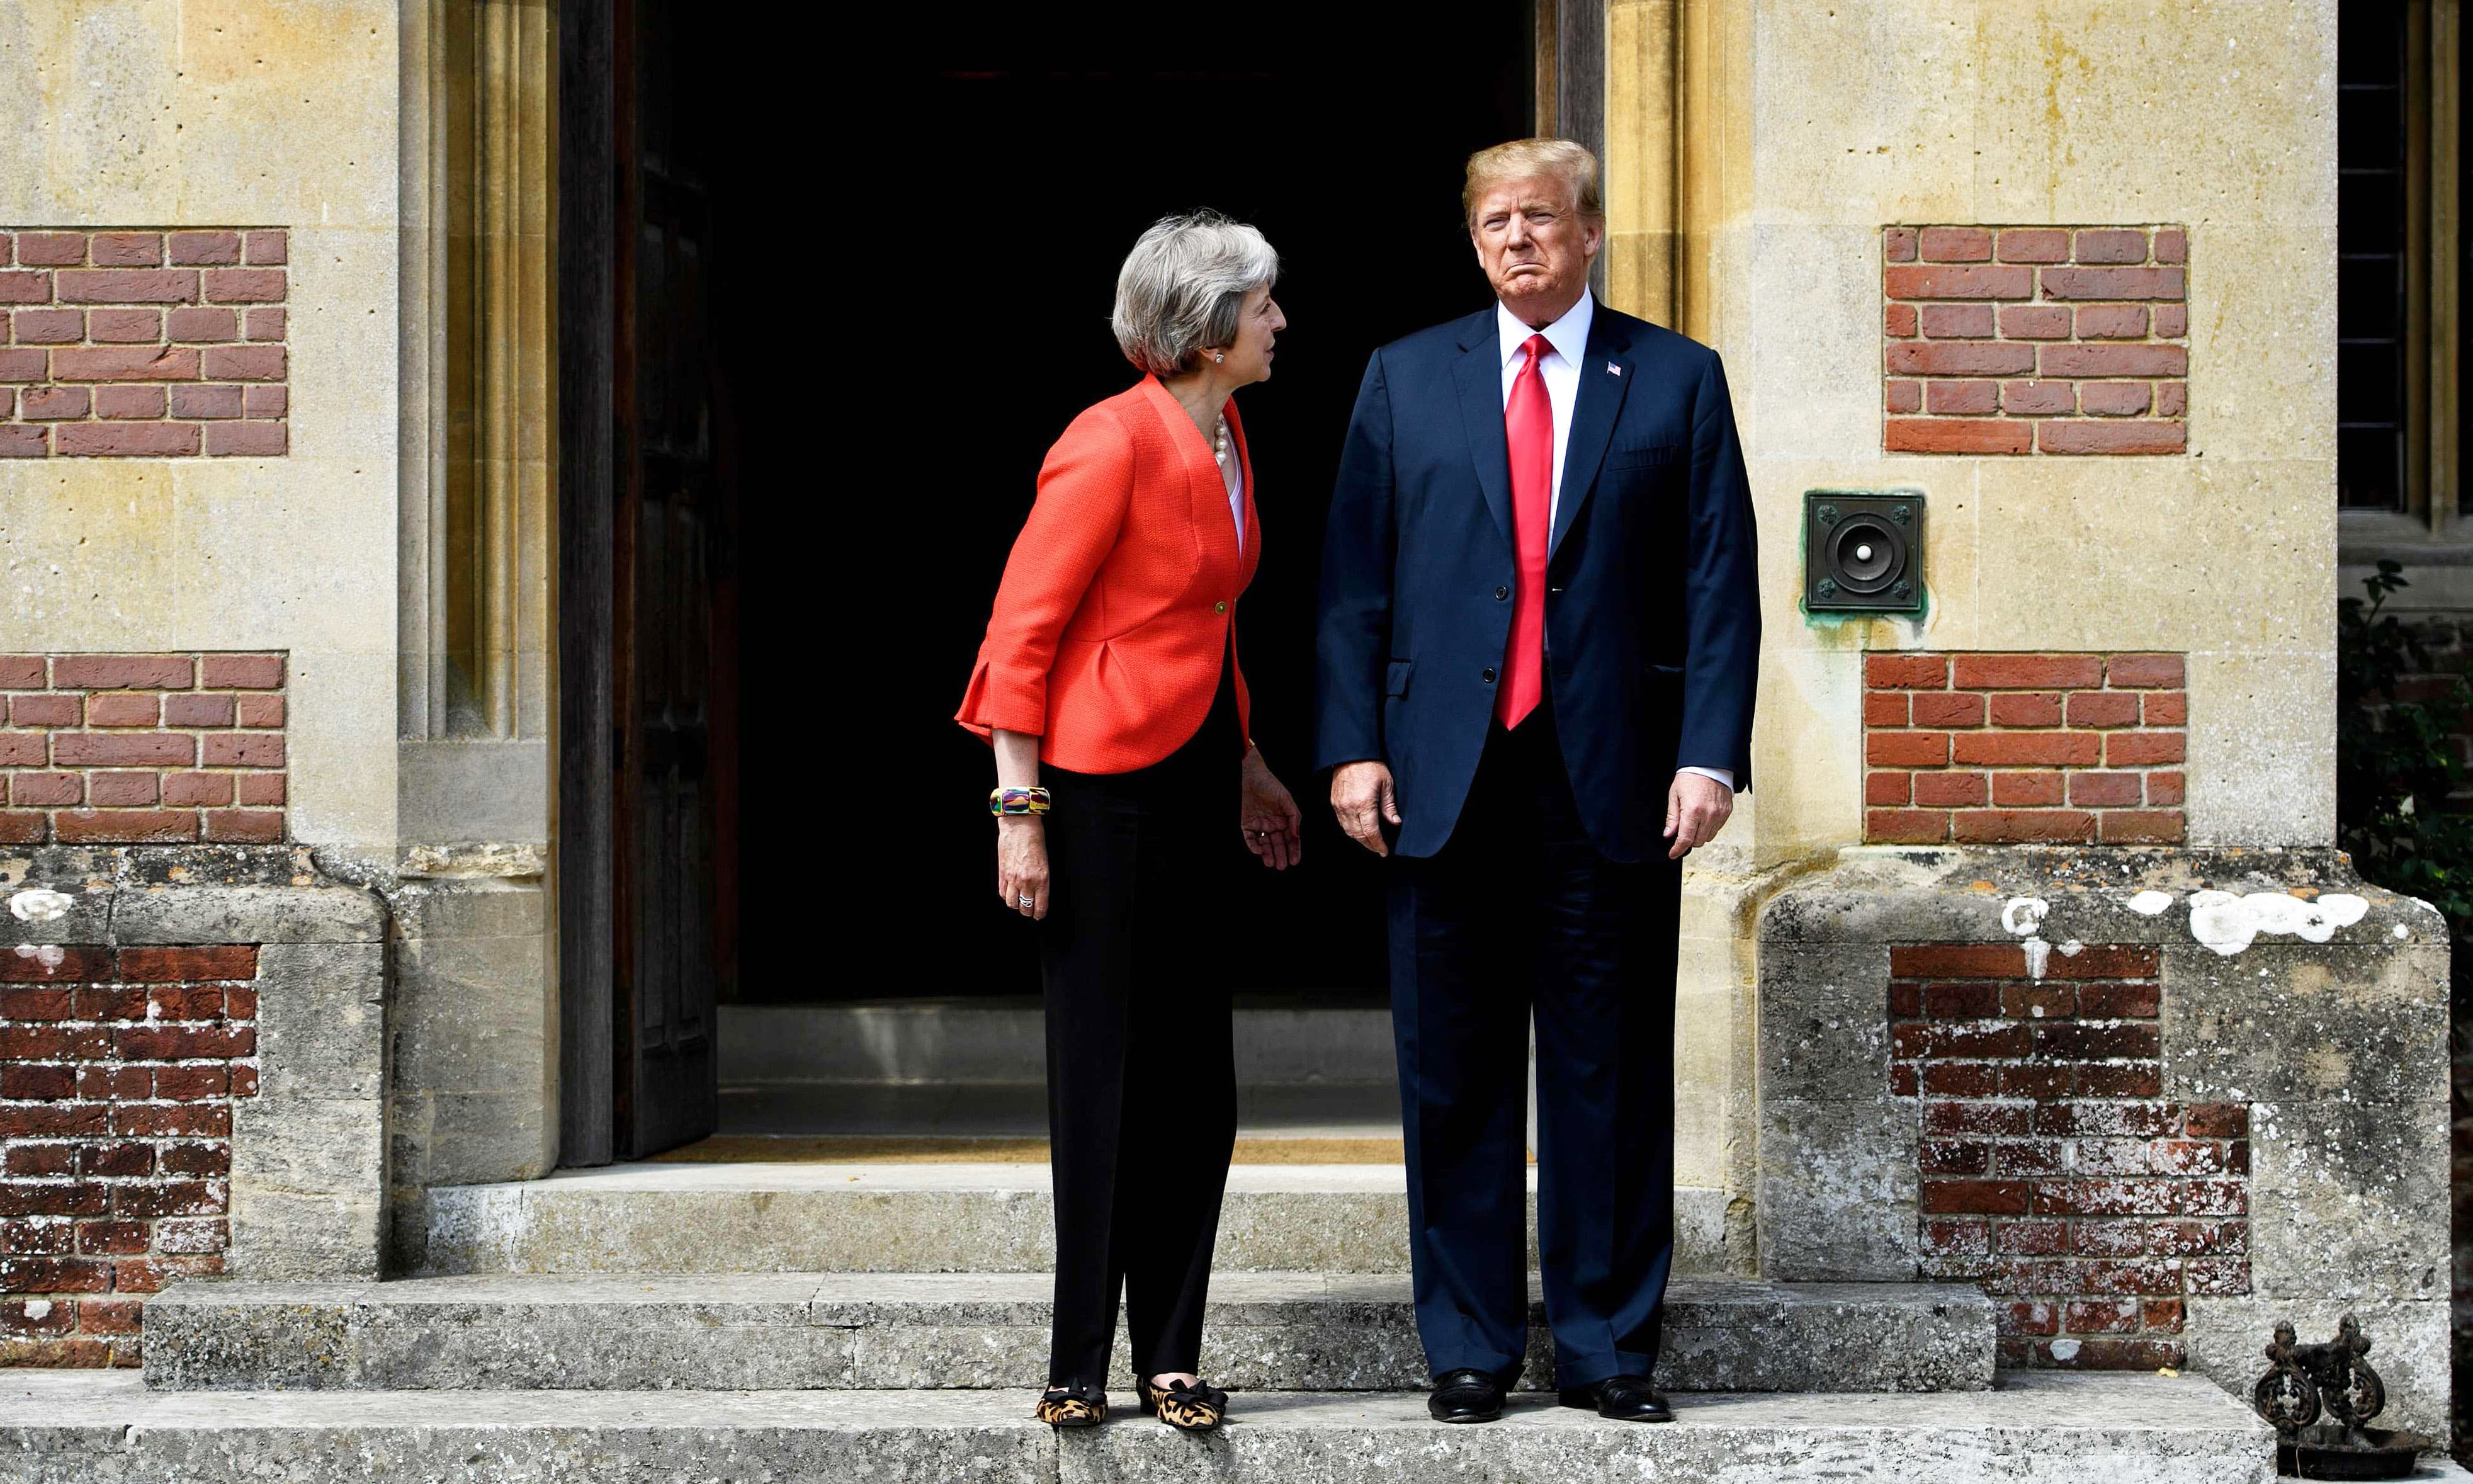 'Where are your manners?' British politicians outraged at Trump